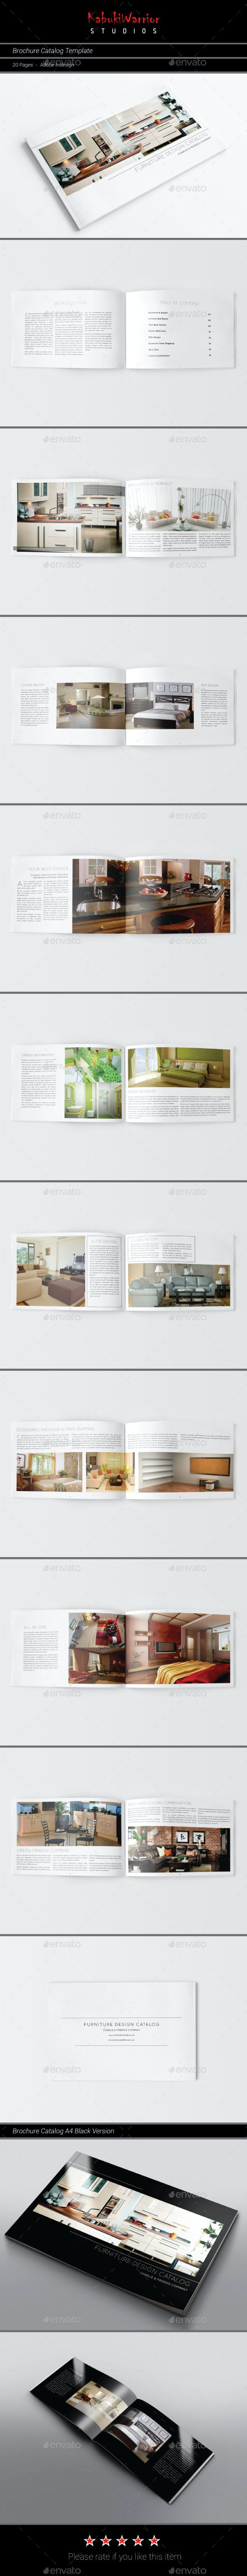 Furniture Interior Catalog - Catalogs Brochures